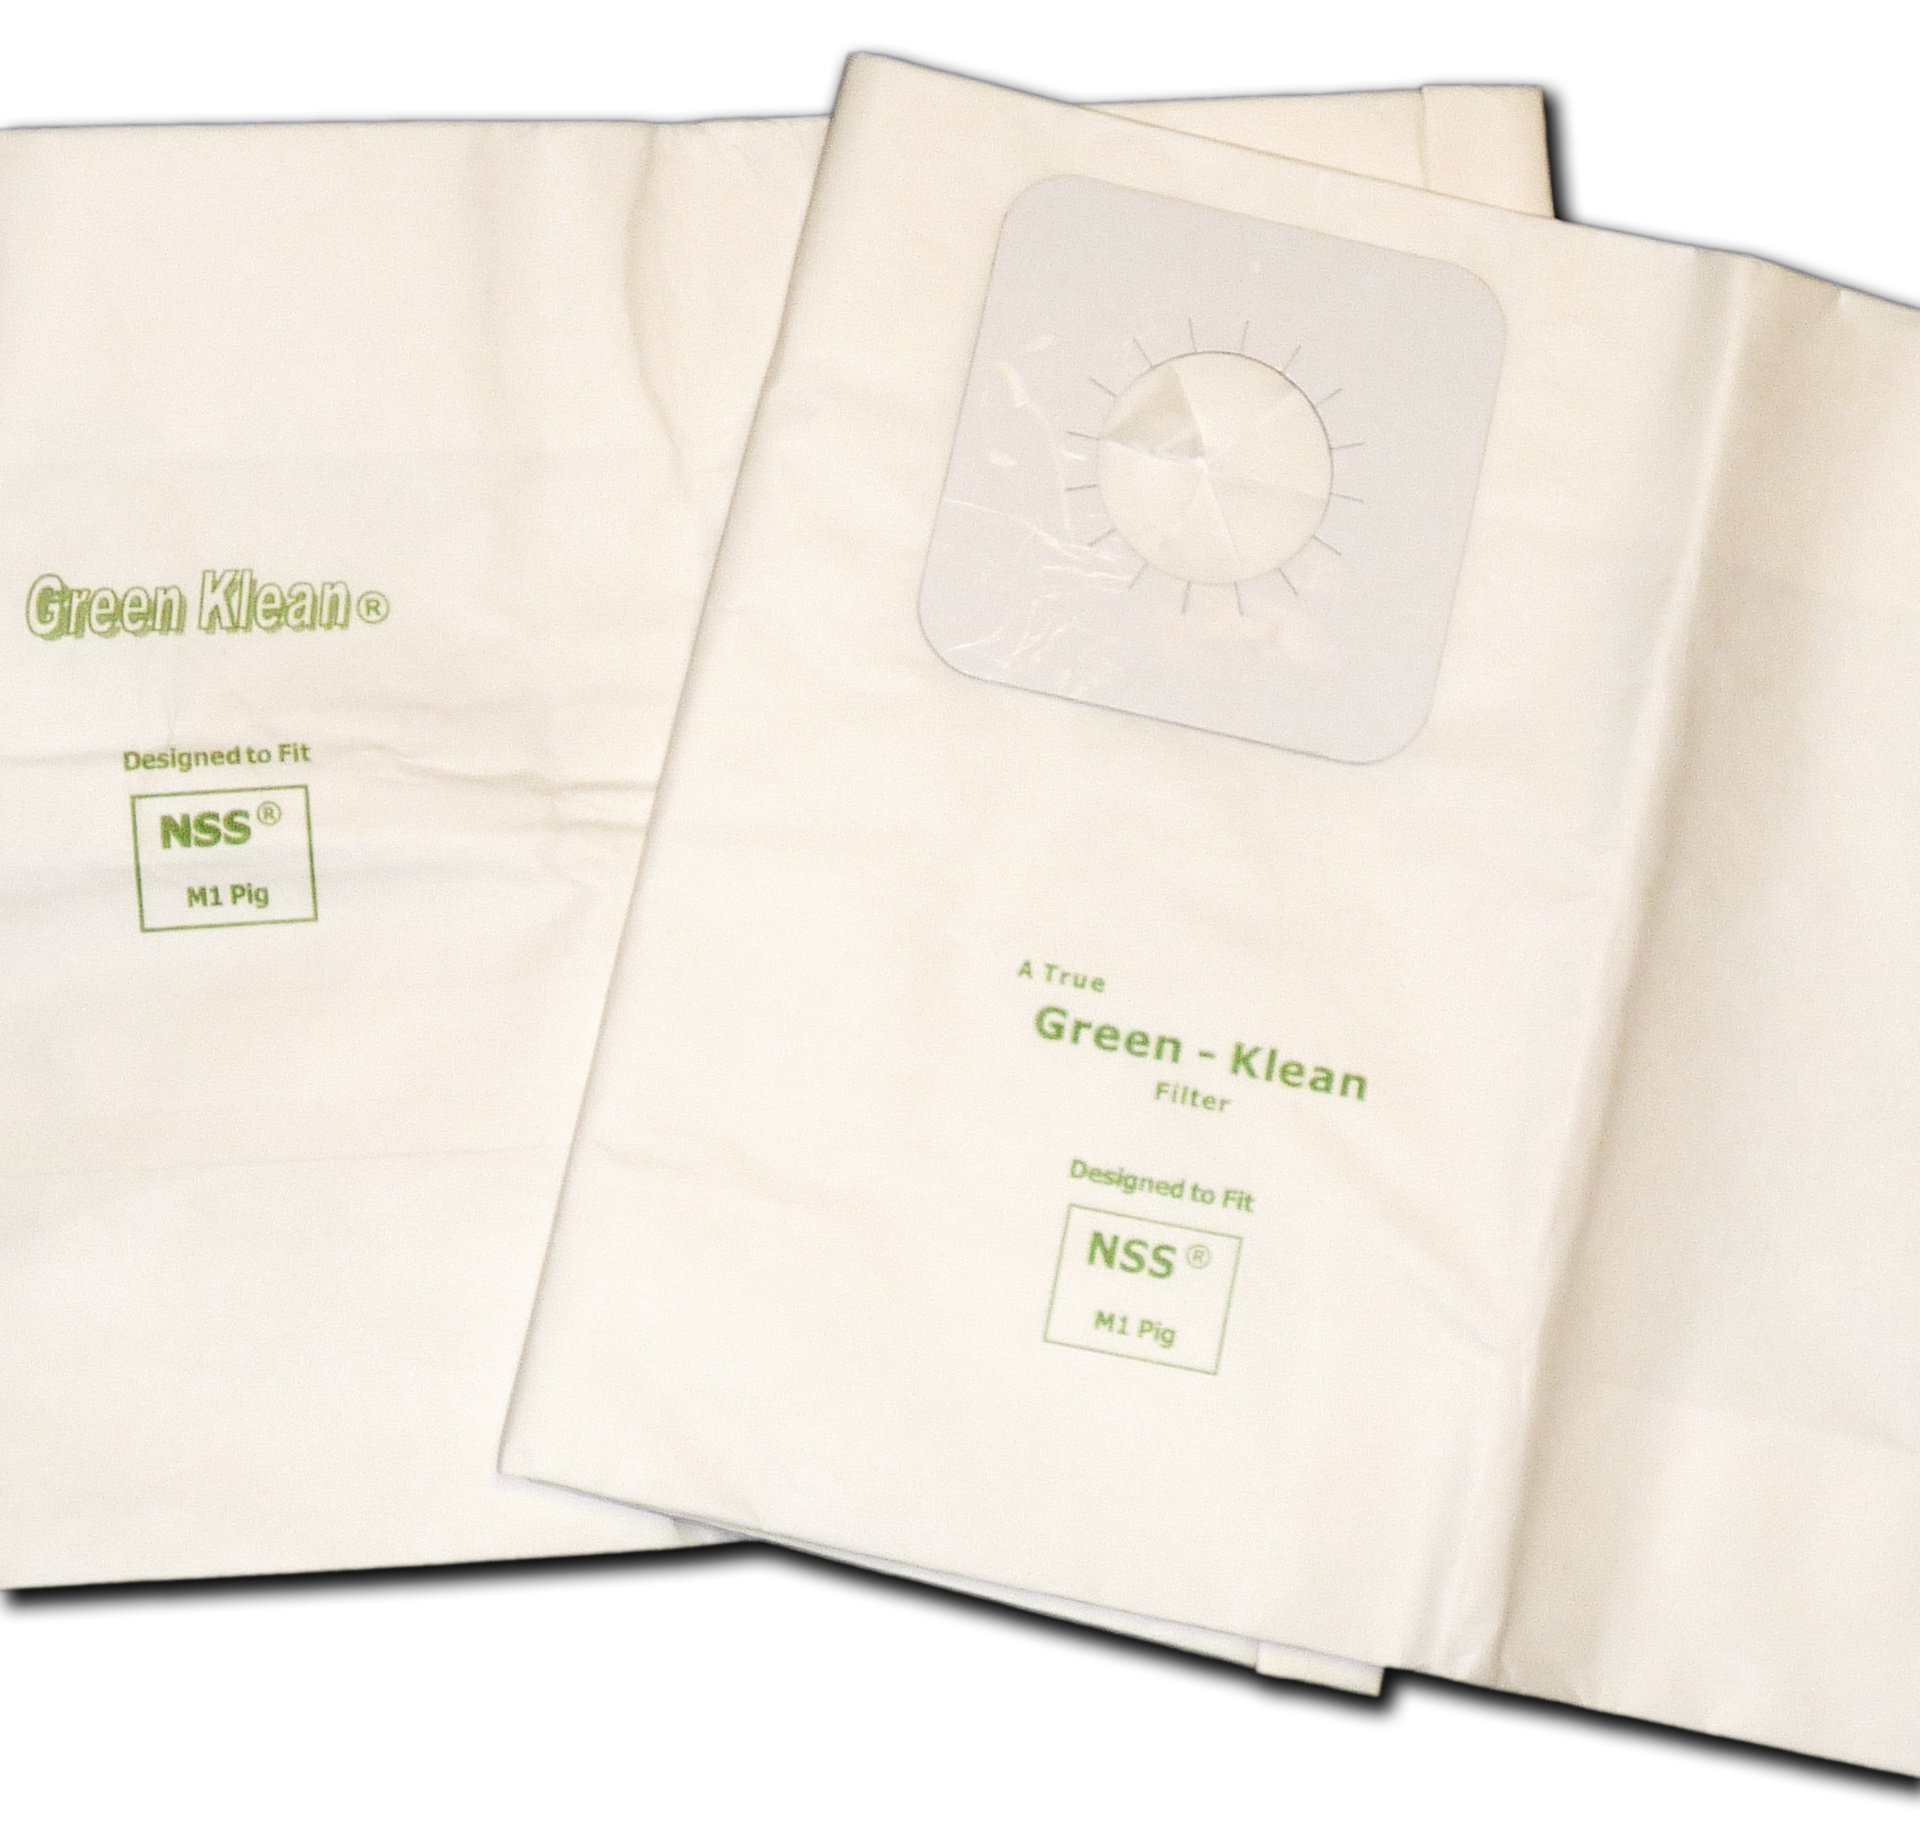 Green Klean GK-M1Pig NSS MPIG Replacement Vacuum Bags (Pack of 36) by Green Klean®